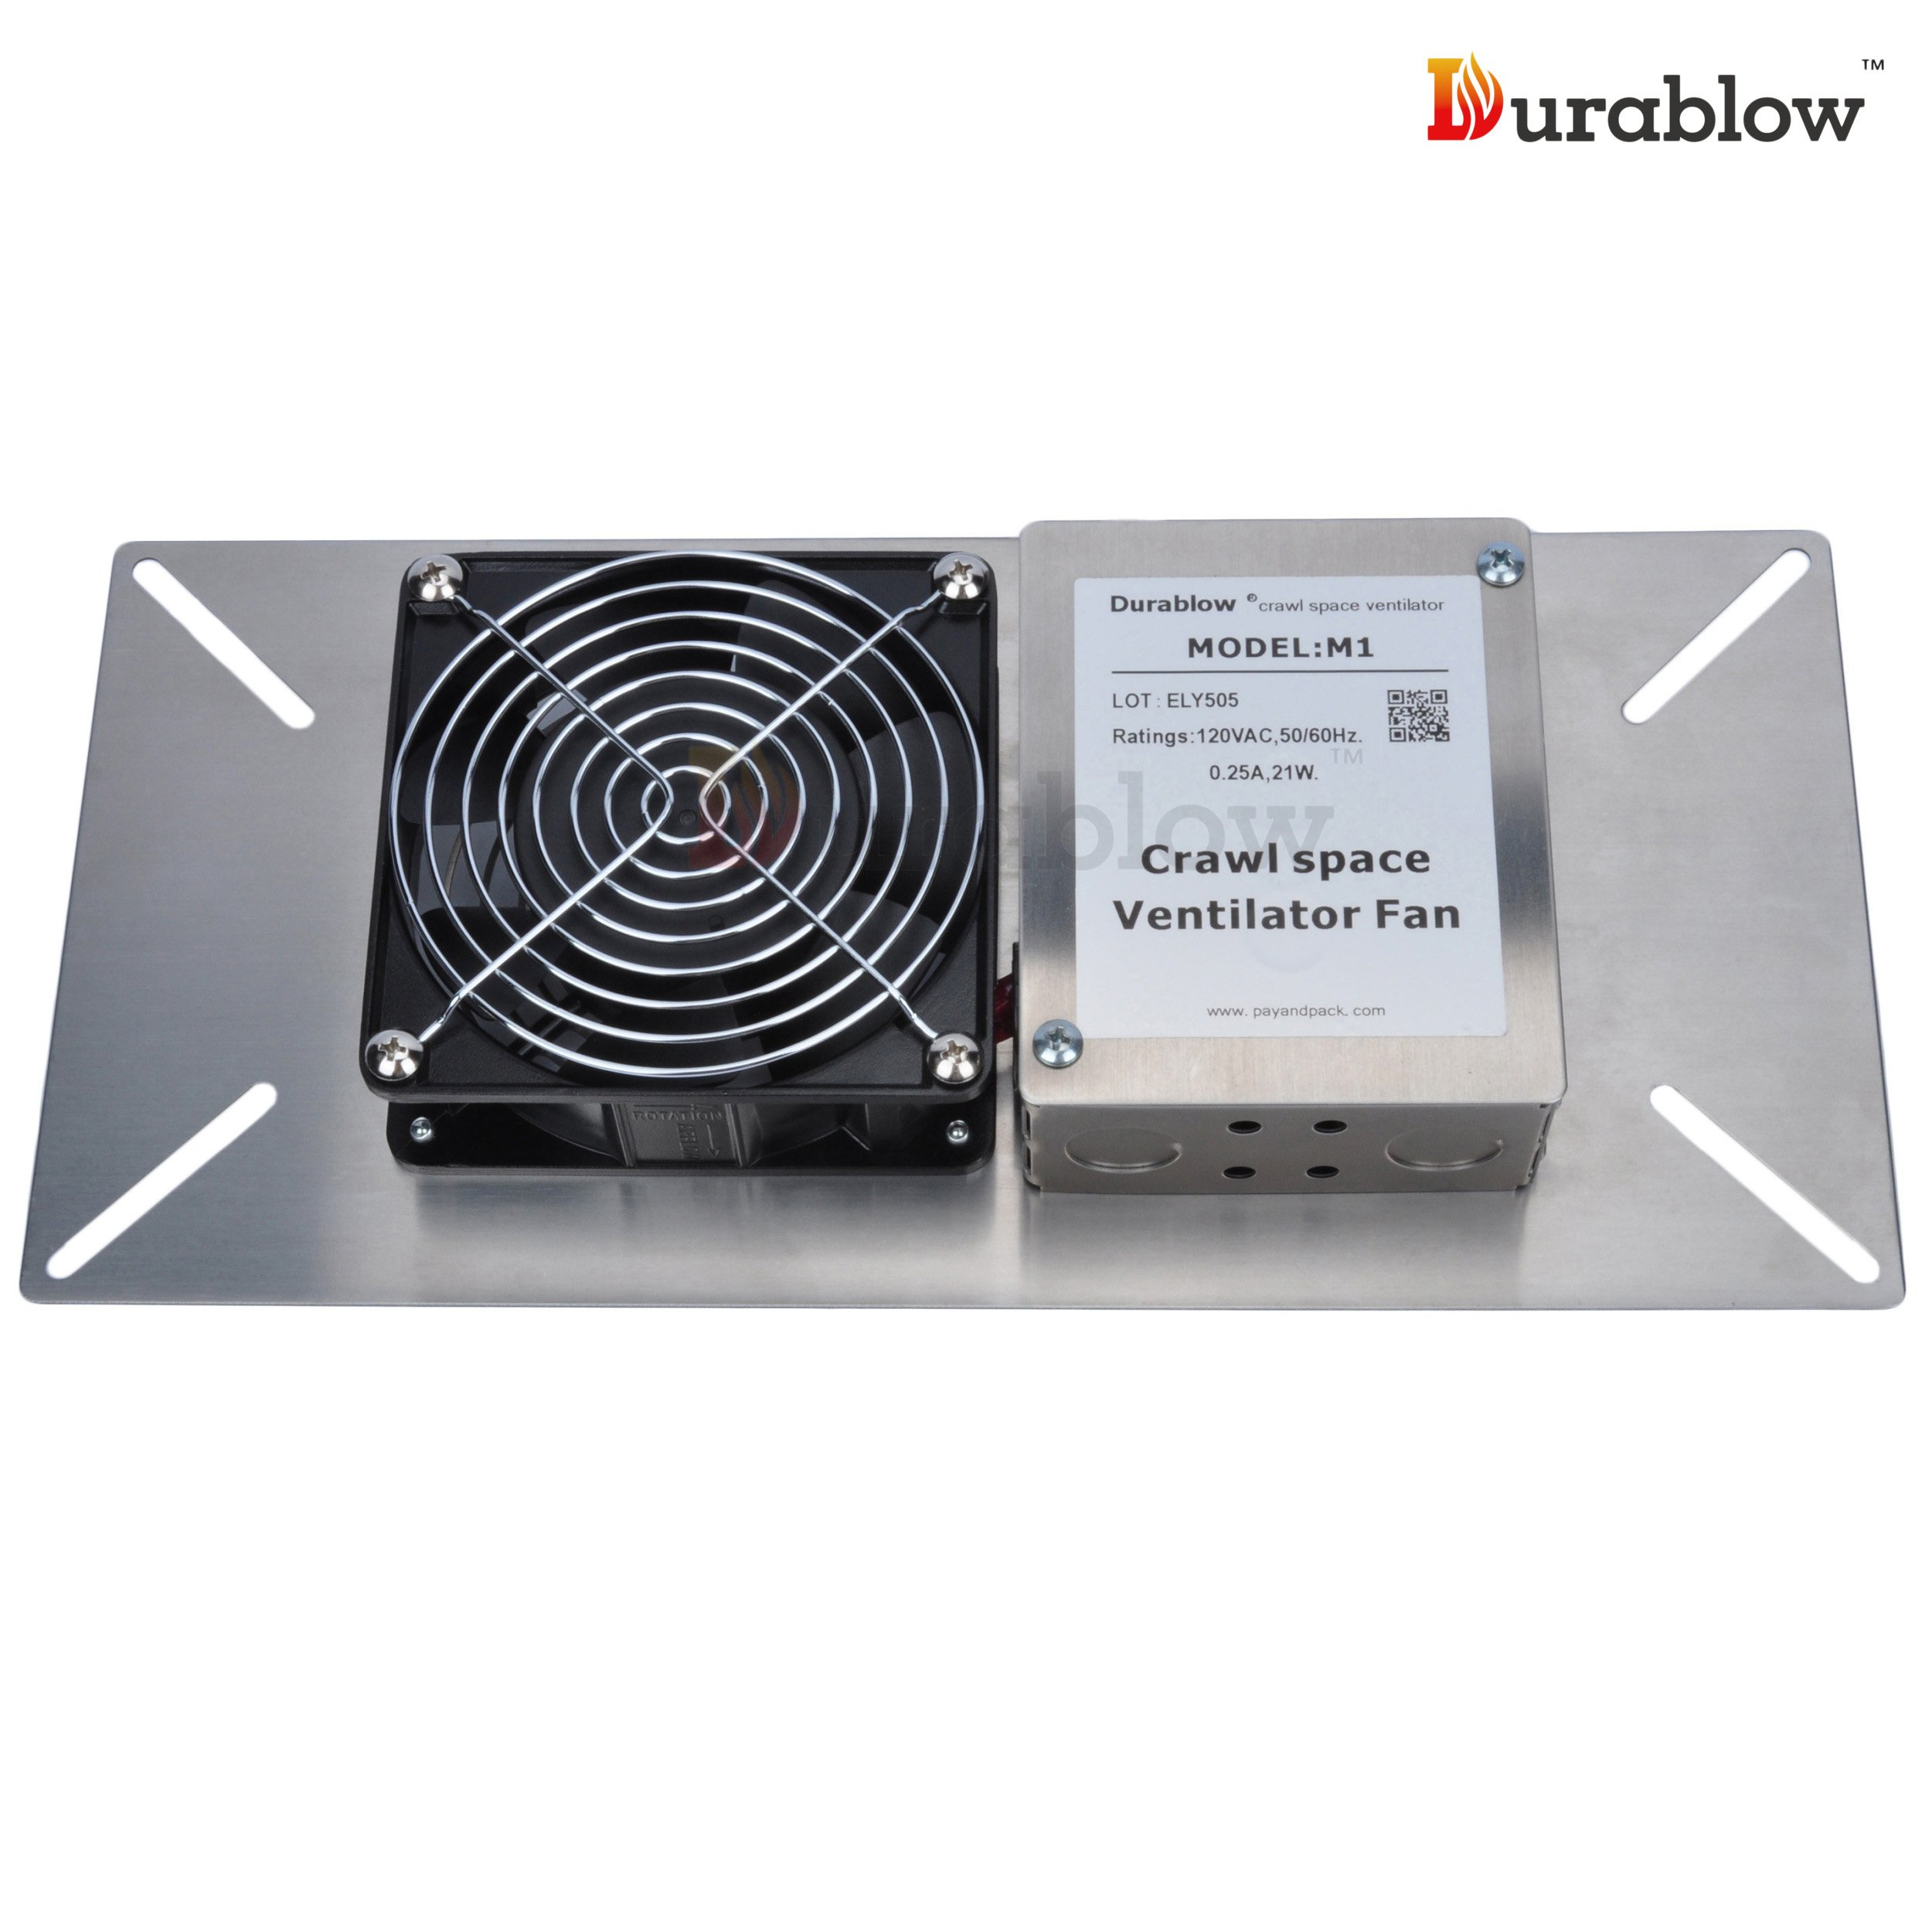 Durablow Stainless Steel 304 Crawl Space Foundation Fan Ventilator MFB M1 by Durablow (Image #4)